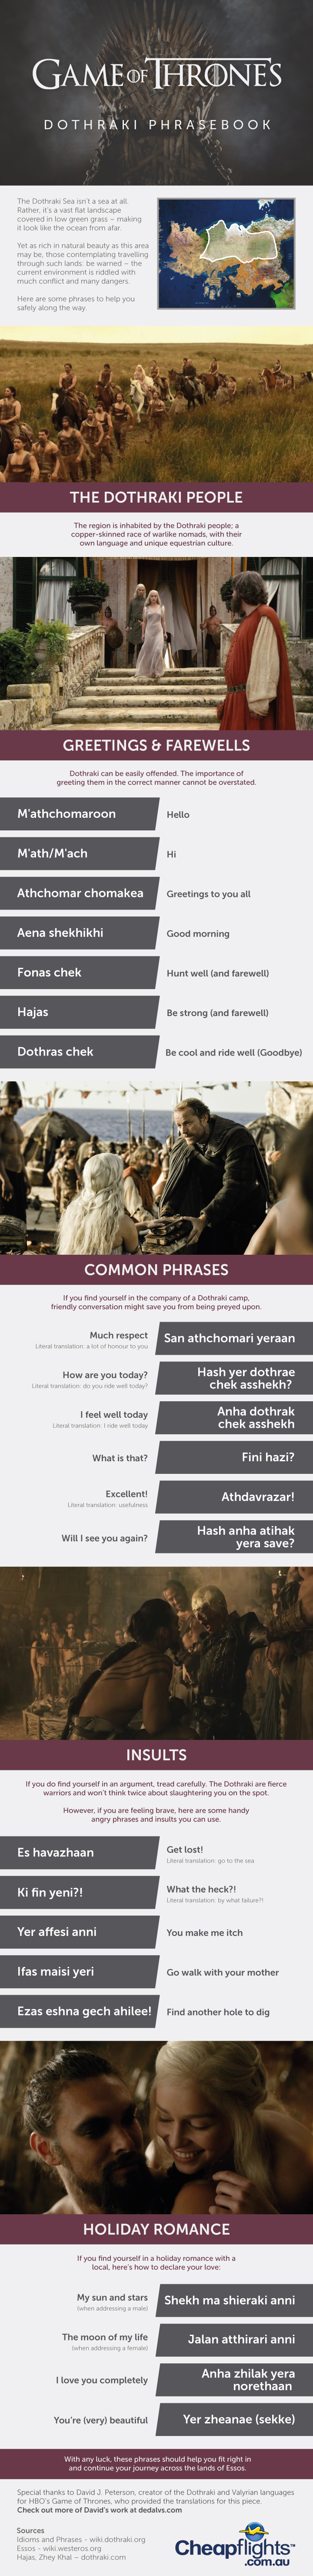 Game of Thrones Phrasebook